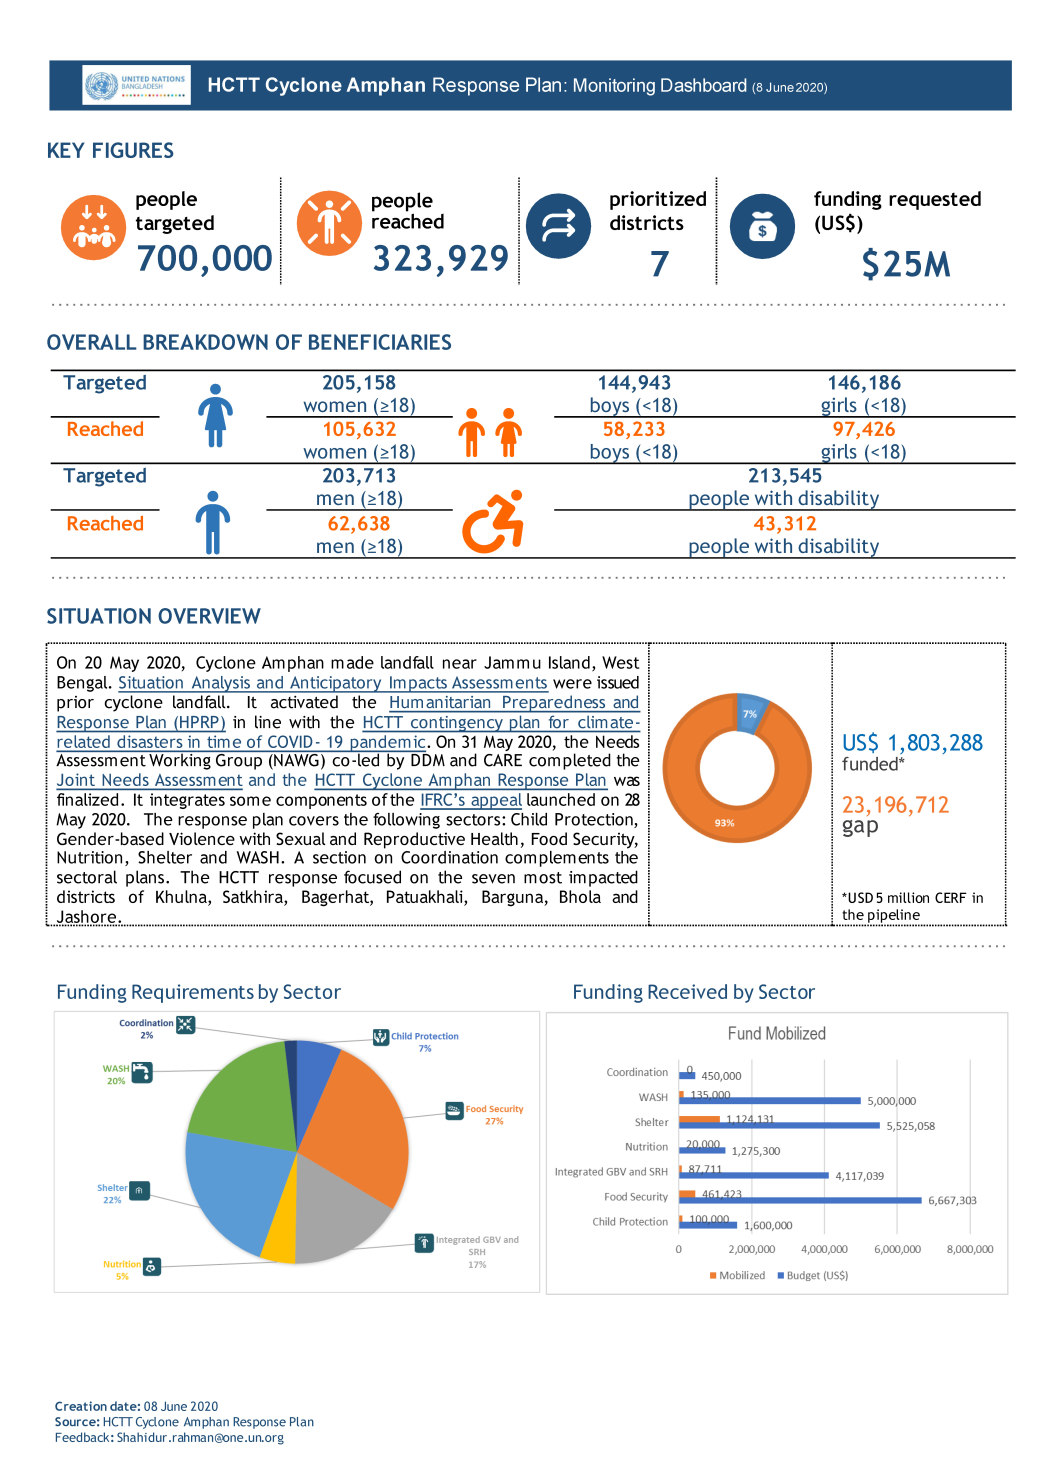 amphan dashboard monitoring 8 june 2020 Page 01